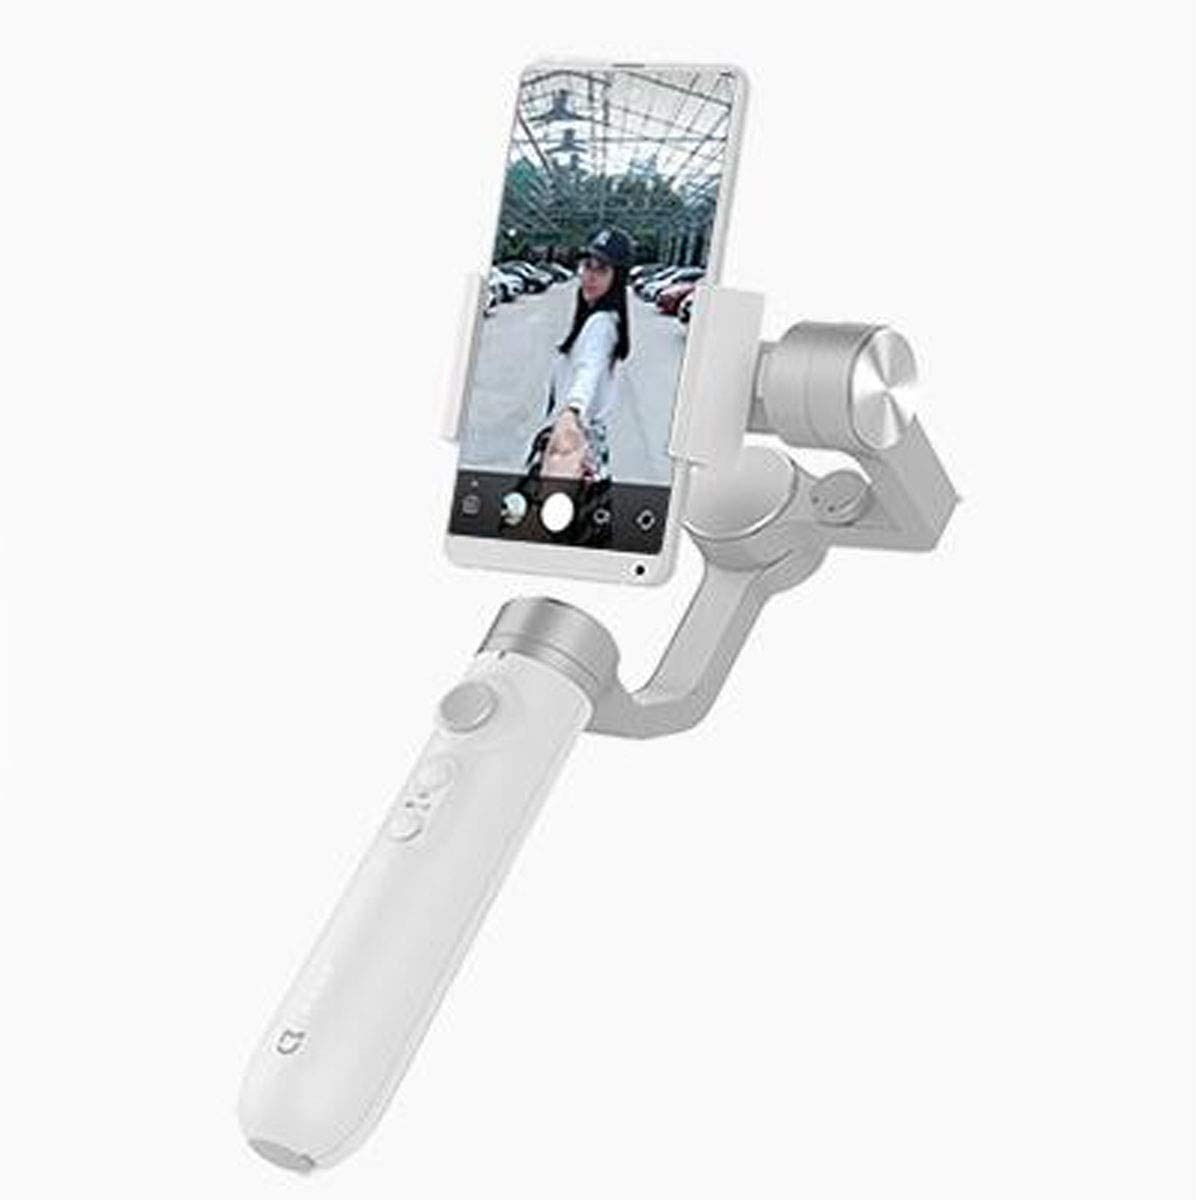 Color : Gray Jiansheng Mobile Phone Stabilizer Handheld 3-axis Stable Rotation Smartphone Self-Timer Live Shooting Video Motion Stabilization Stabilizer